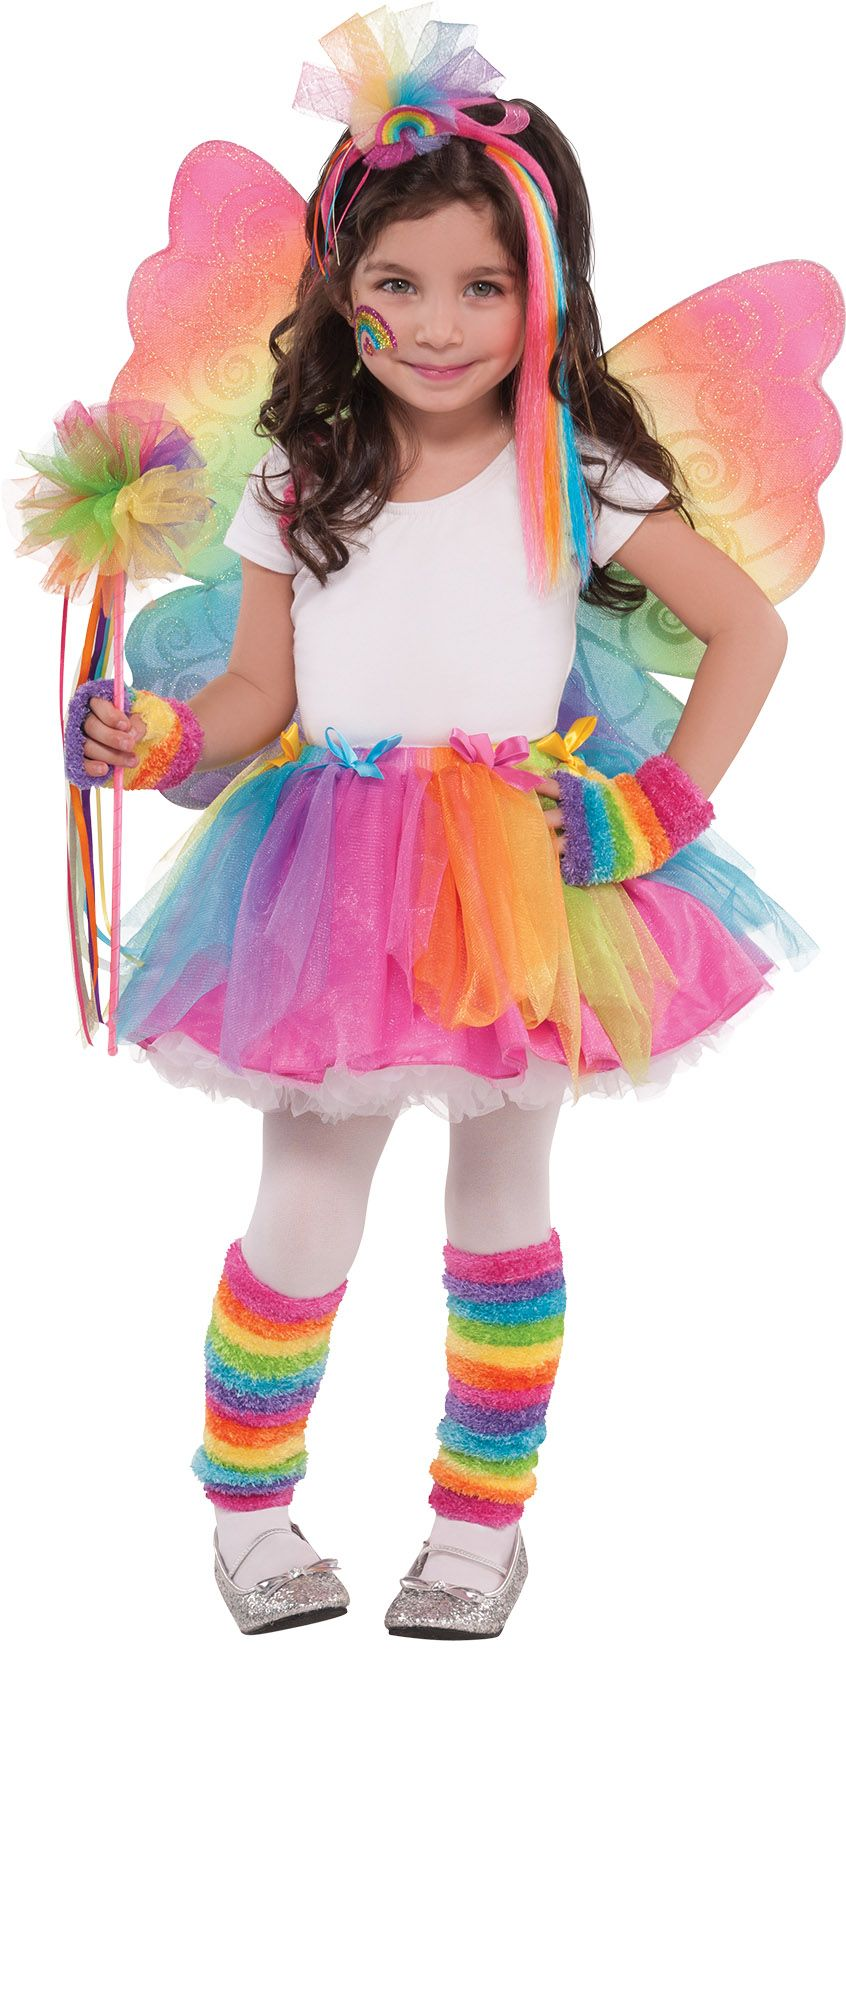 Create Your Own Girls' Rainbow Fairy Costume Accessories